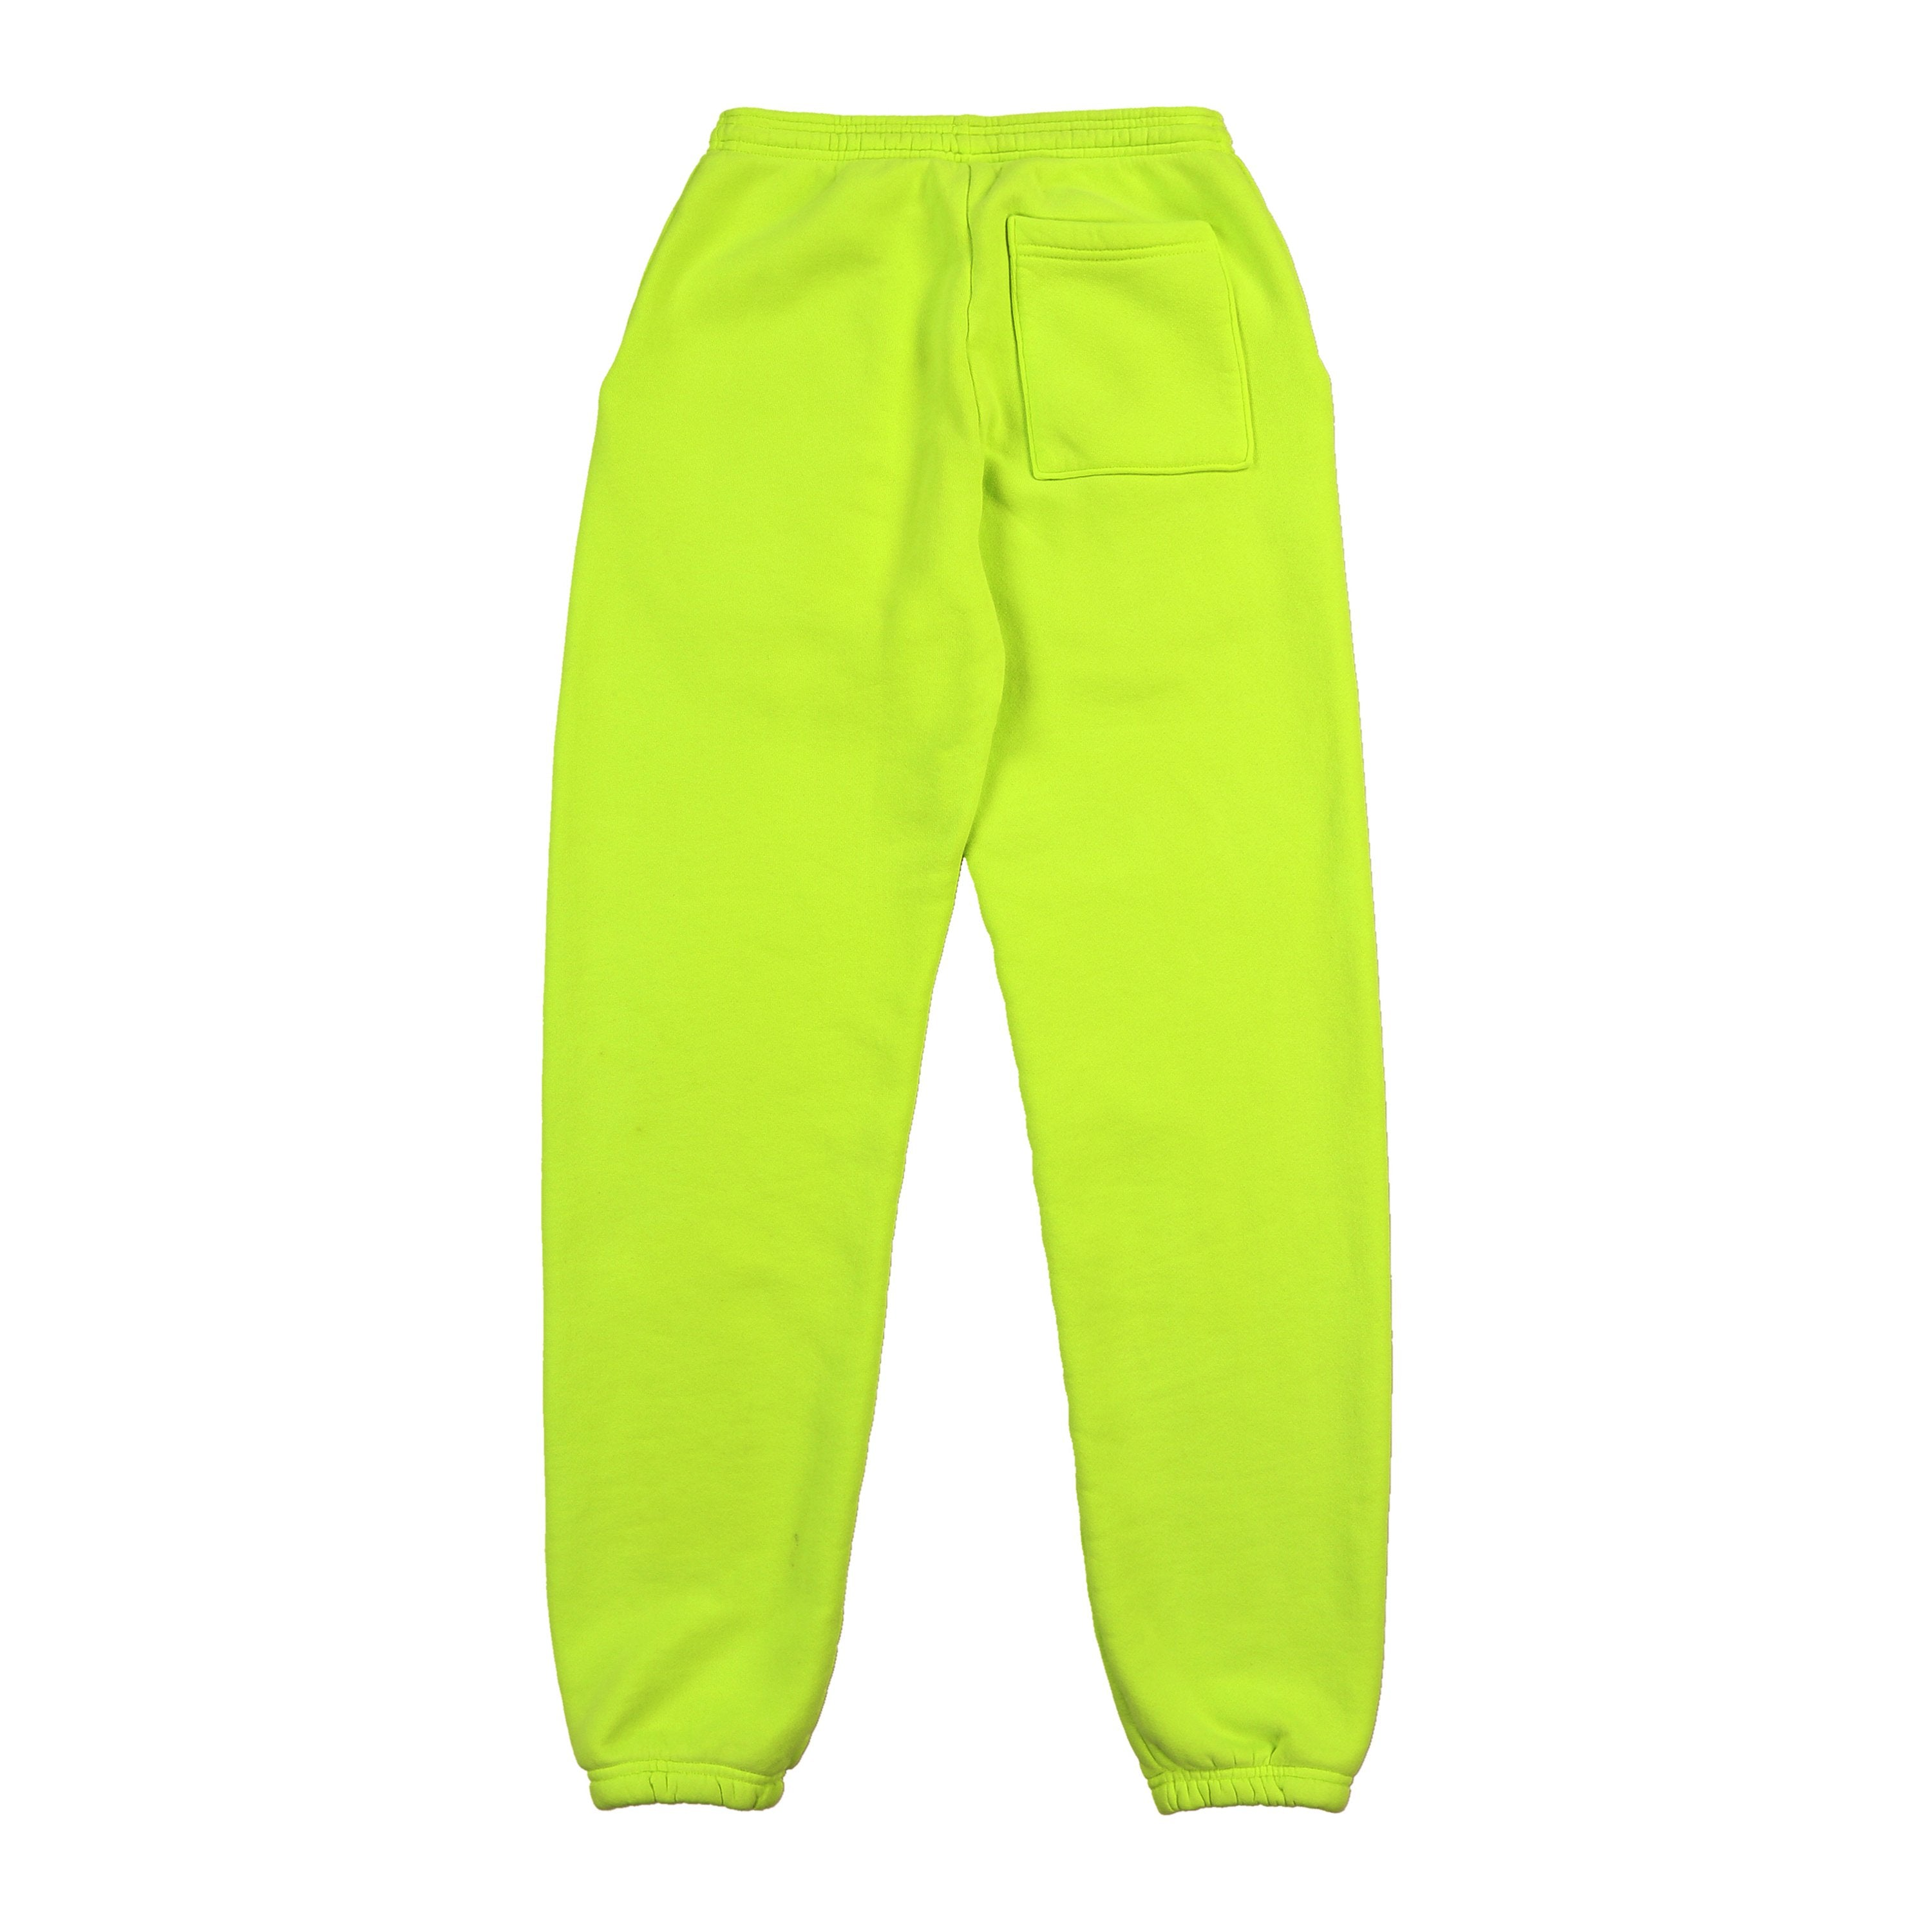 AMERICAN CLASSIC SWEATPANTS (NEON YELLOW)